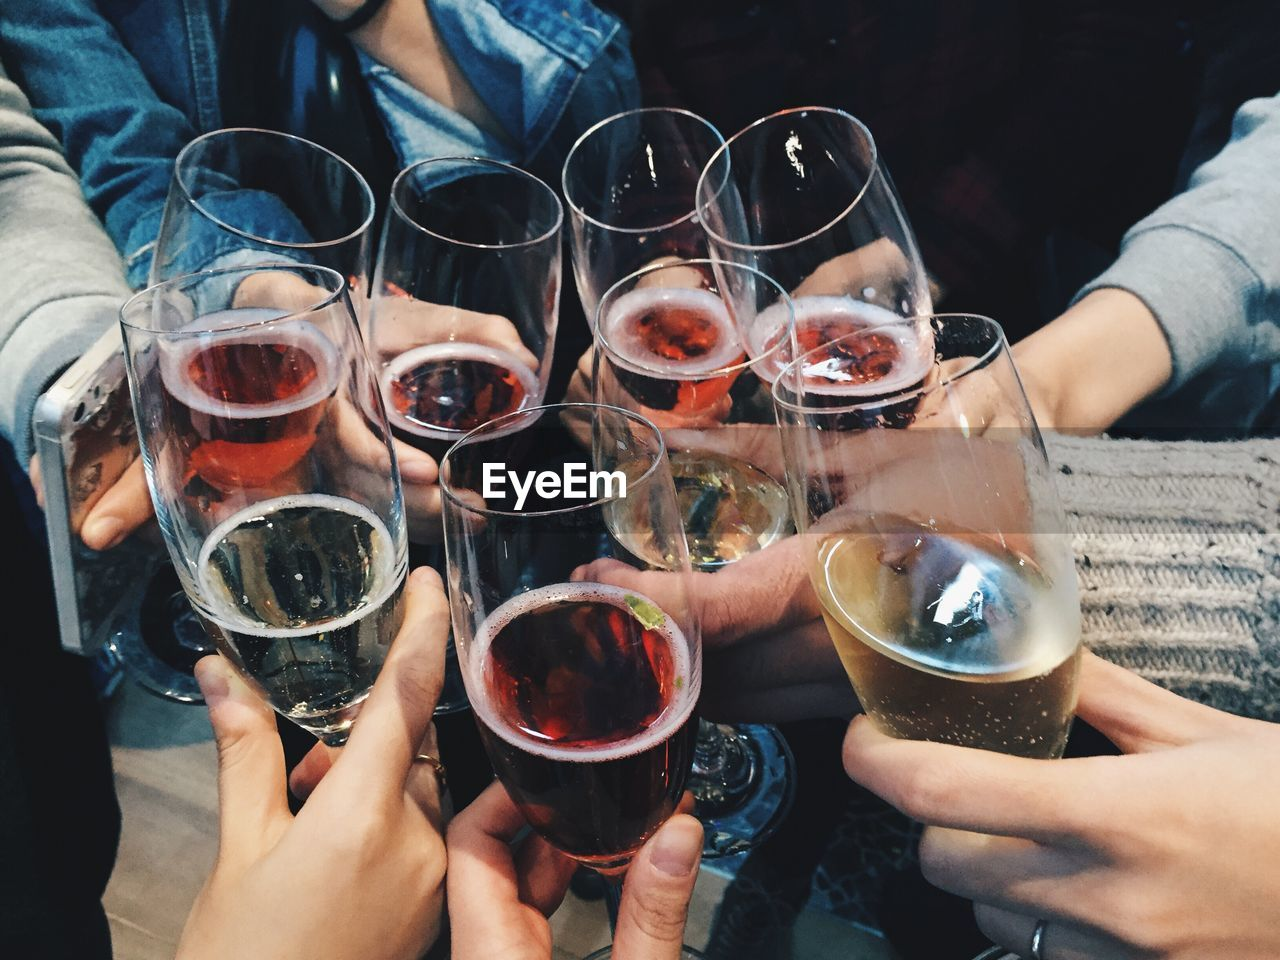 group of people, friendship, refreshment, drink, food and drink, human hand, real people, hand, celebratory toast, lifestyles, alcohol, holding, togetherness, women, medium group of people, men, leisure activity, adult, glass, people, red wine